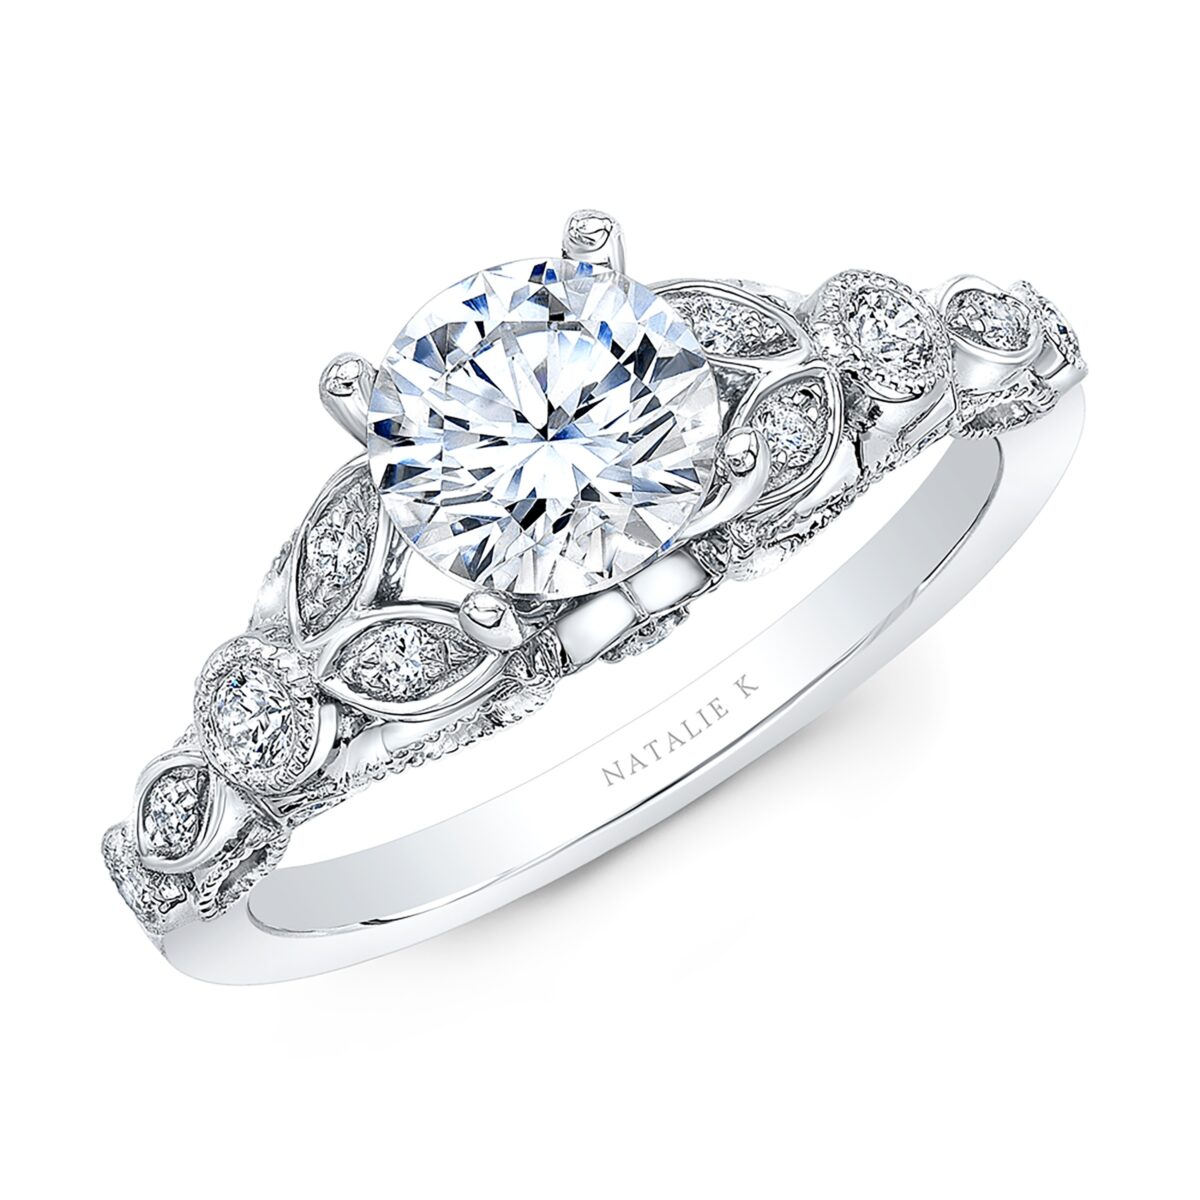 by rings rose collections k fine jewelry wedding natalie new designer engagement